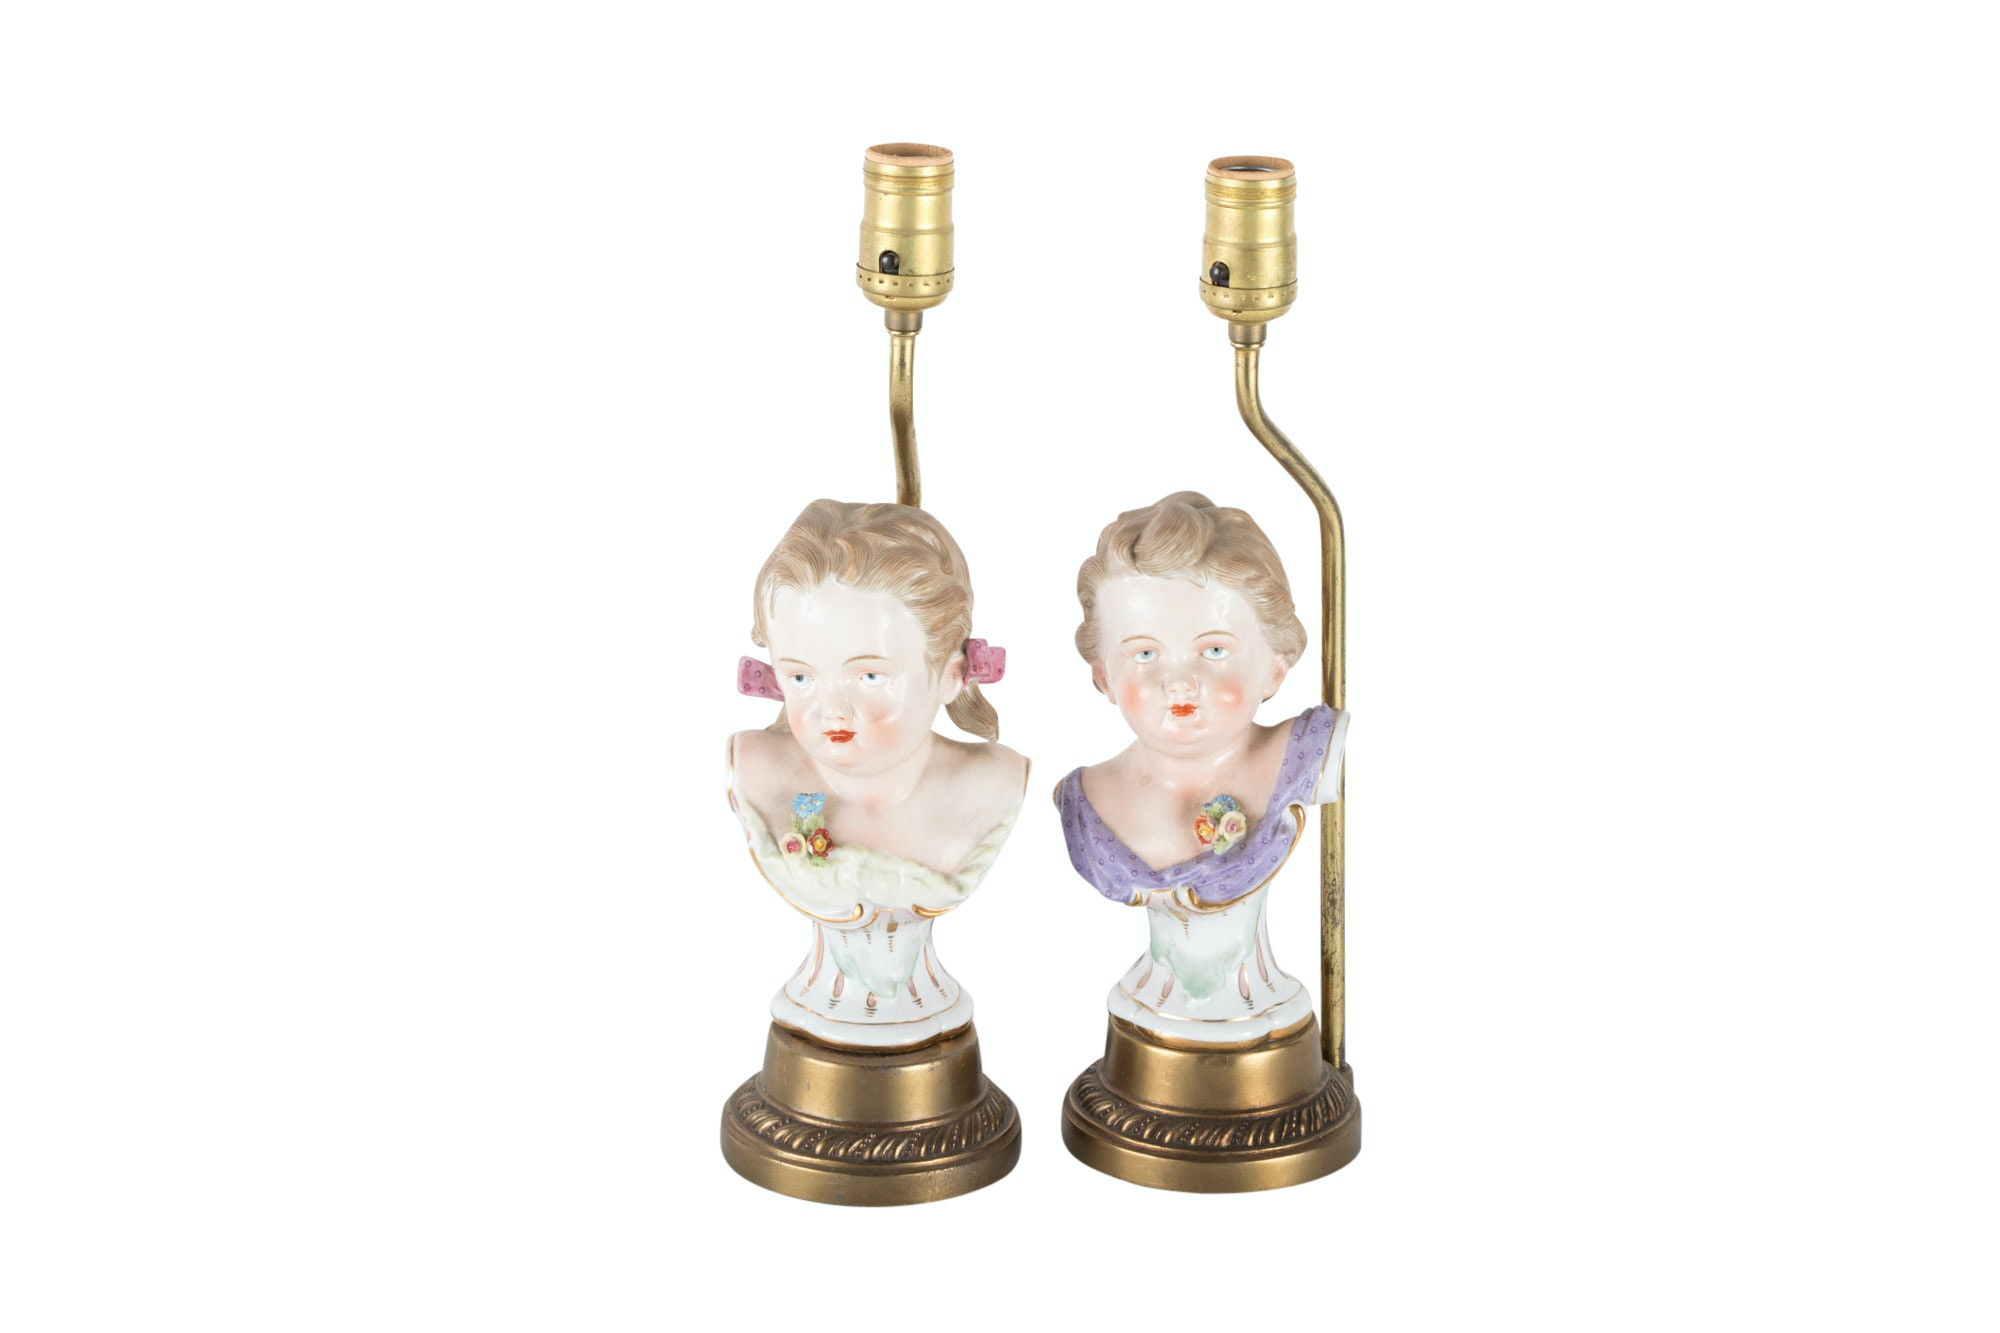 Pair of German Porcelain Busts Mounted as Lamps, 20th Century